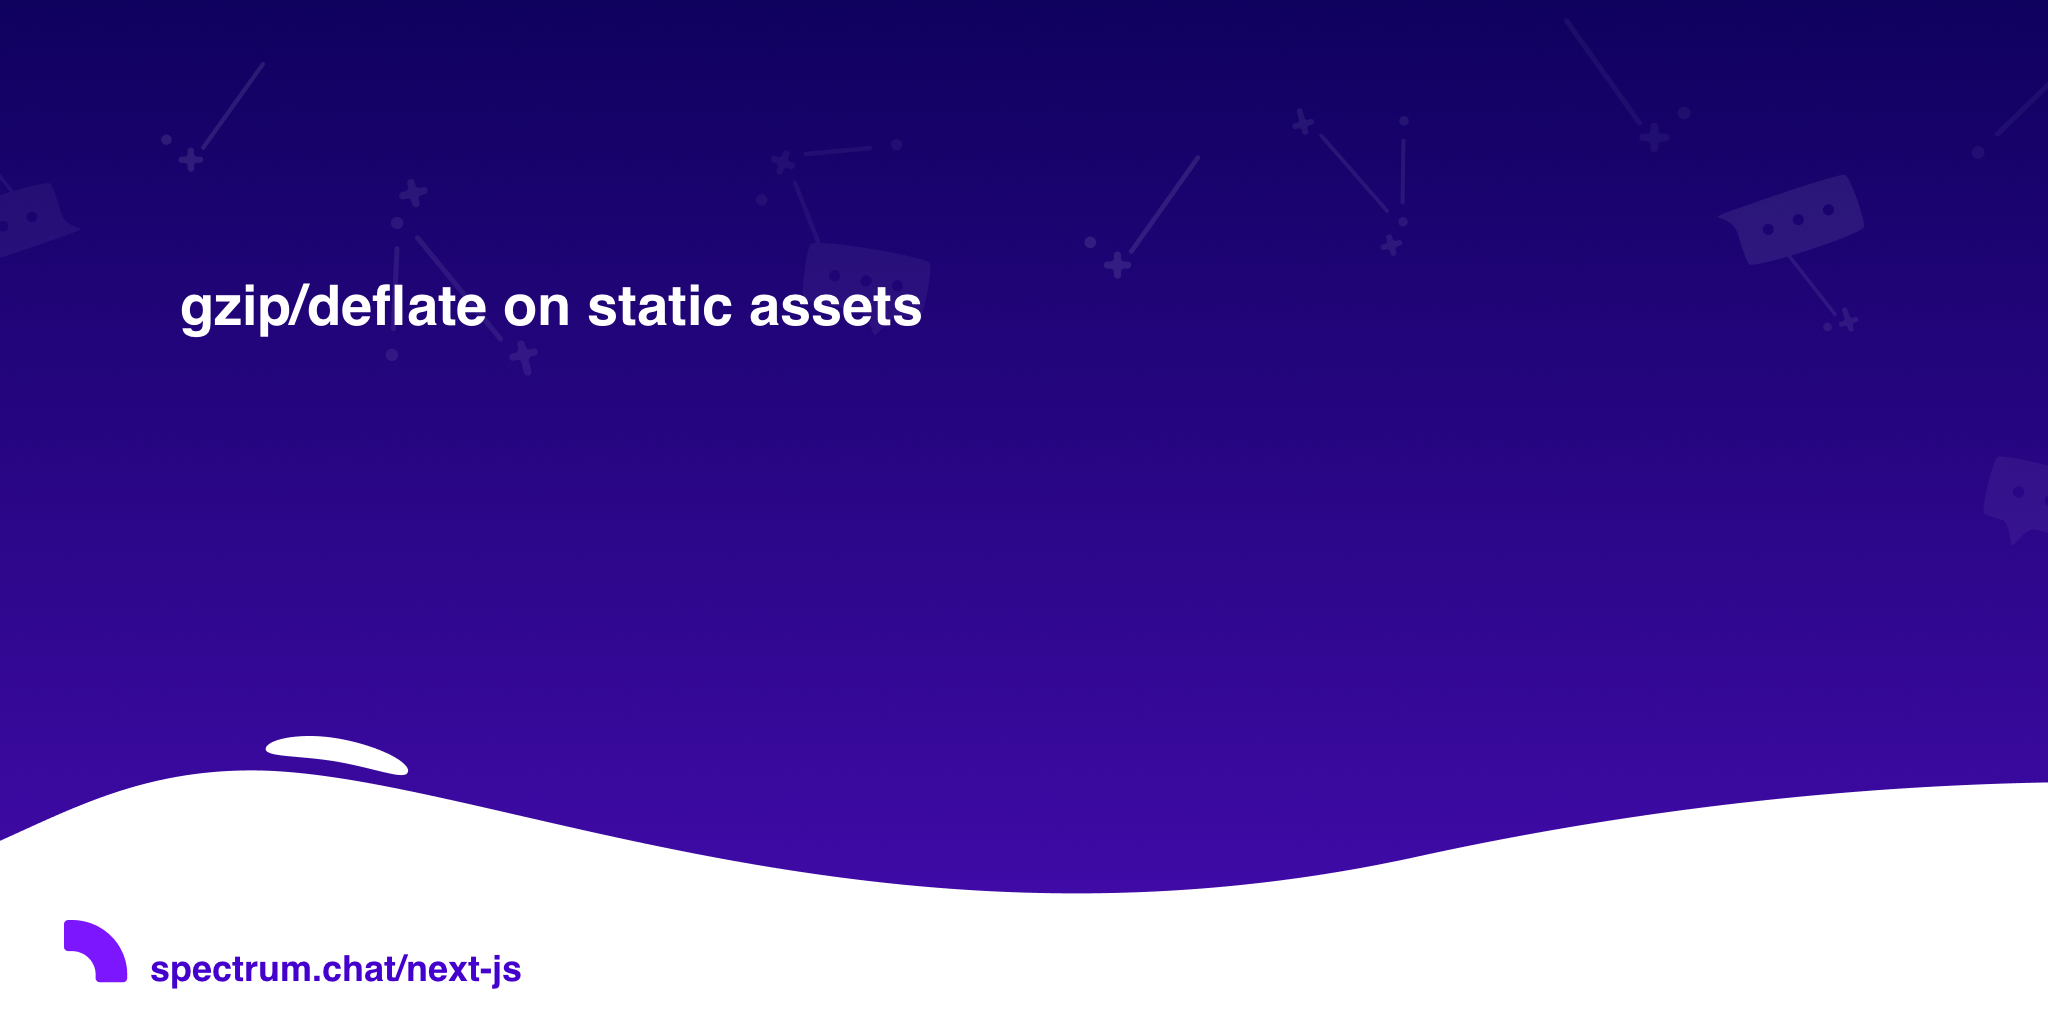 gzip/deflate on static assets · Next js